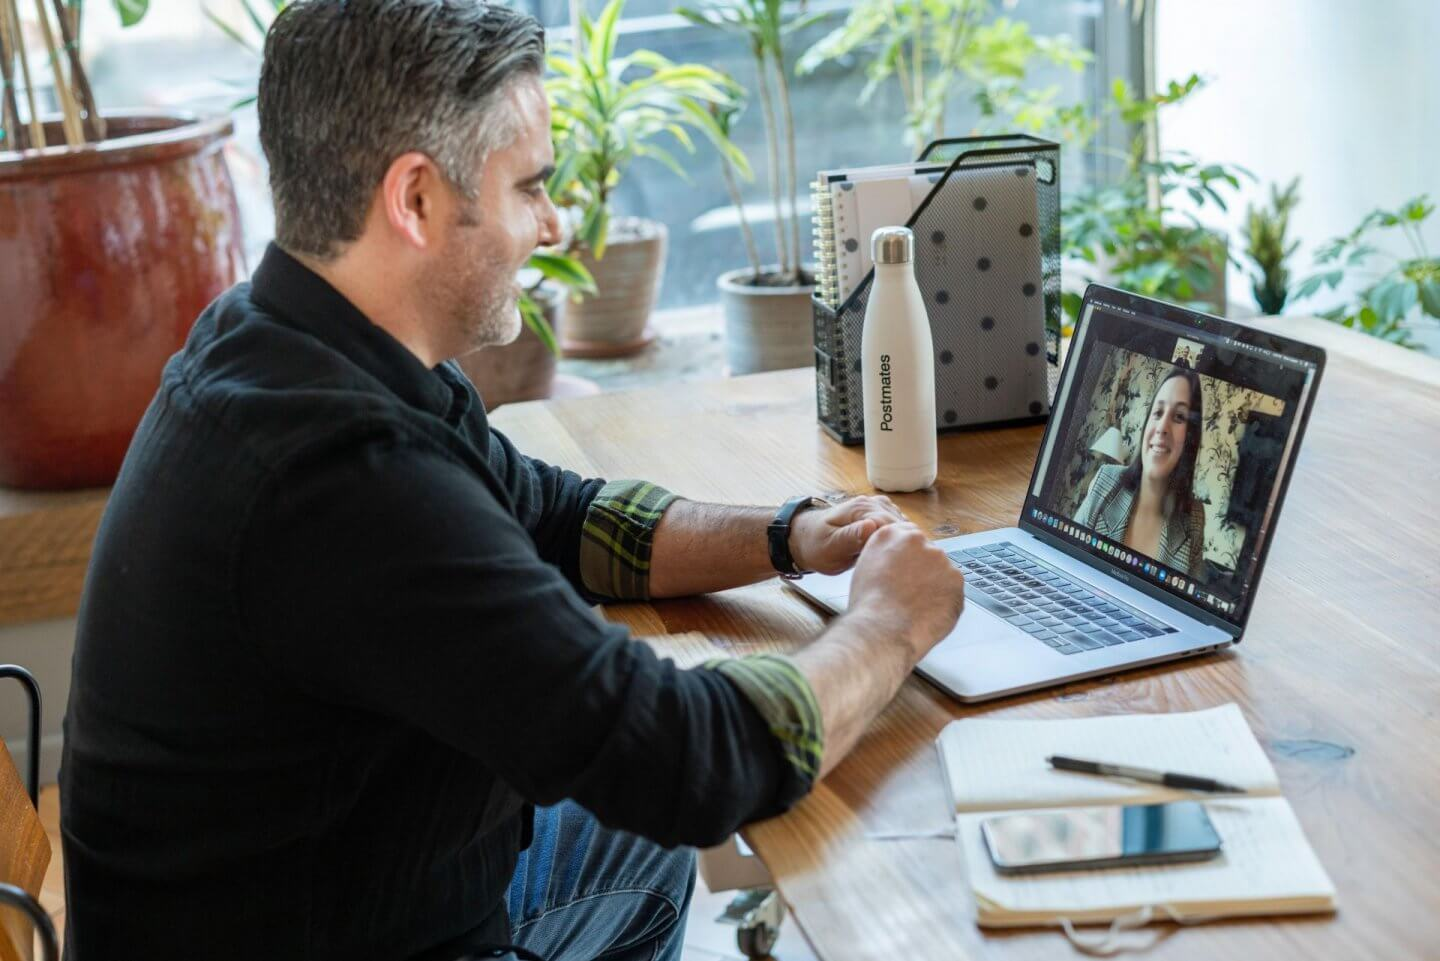 Freedom Day image. Man working from home.